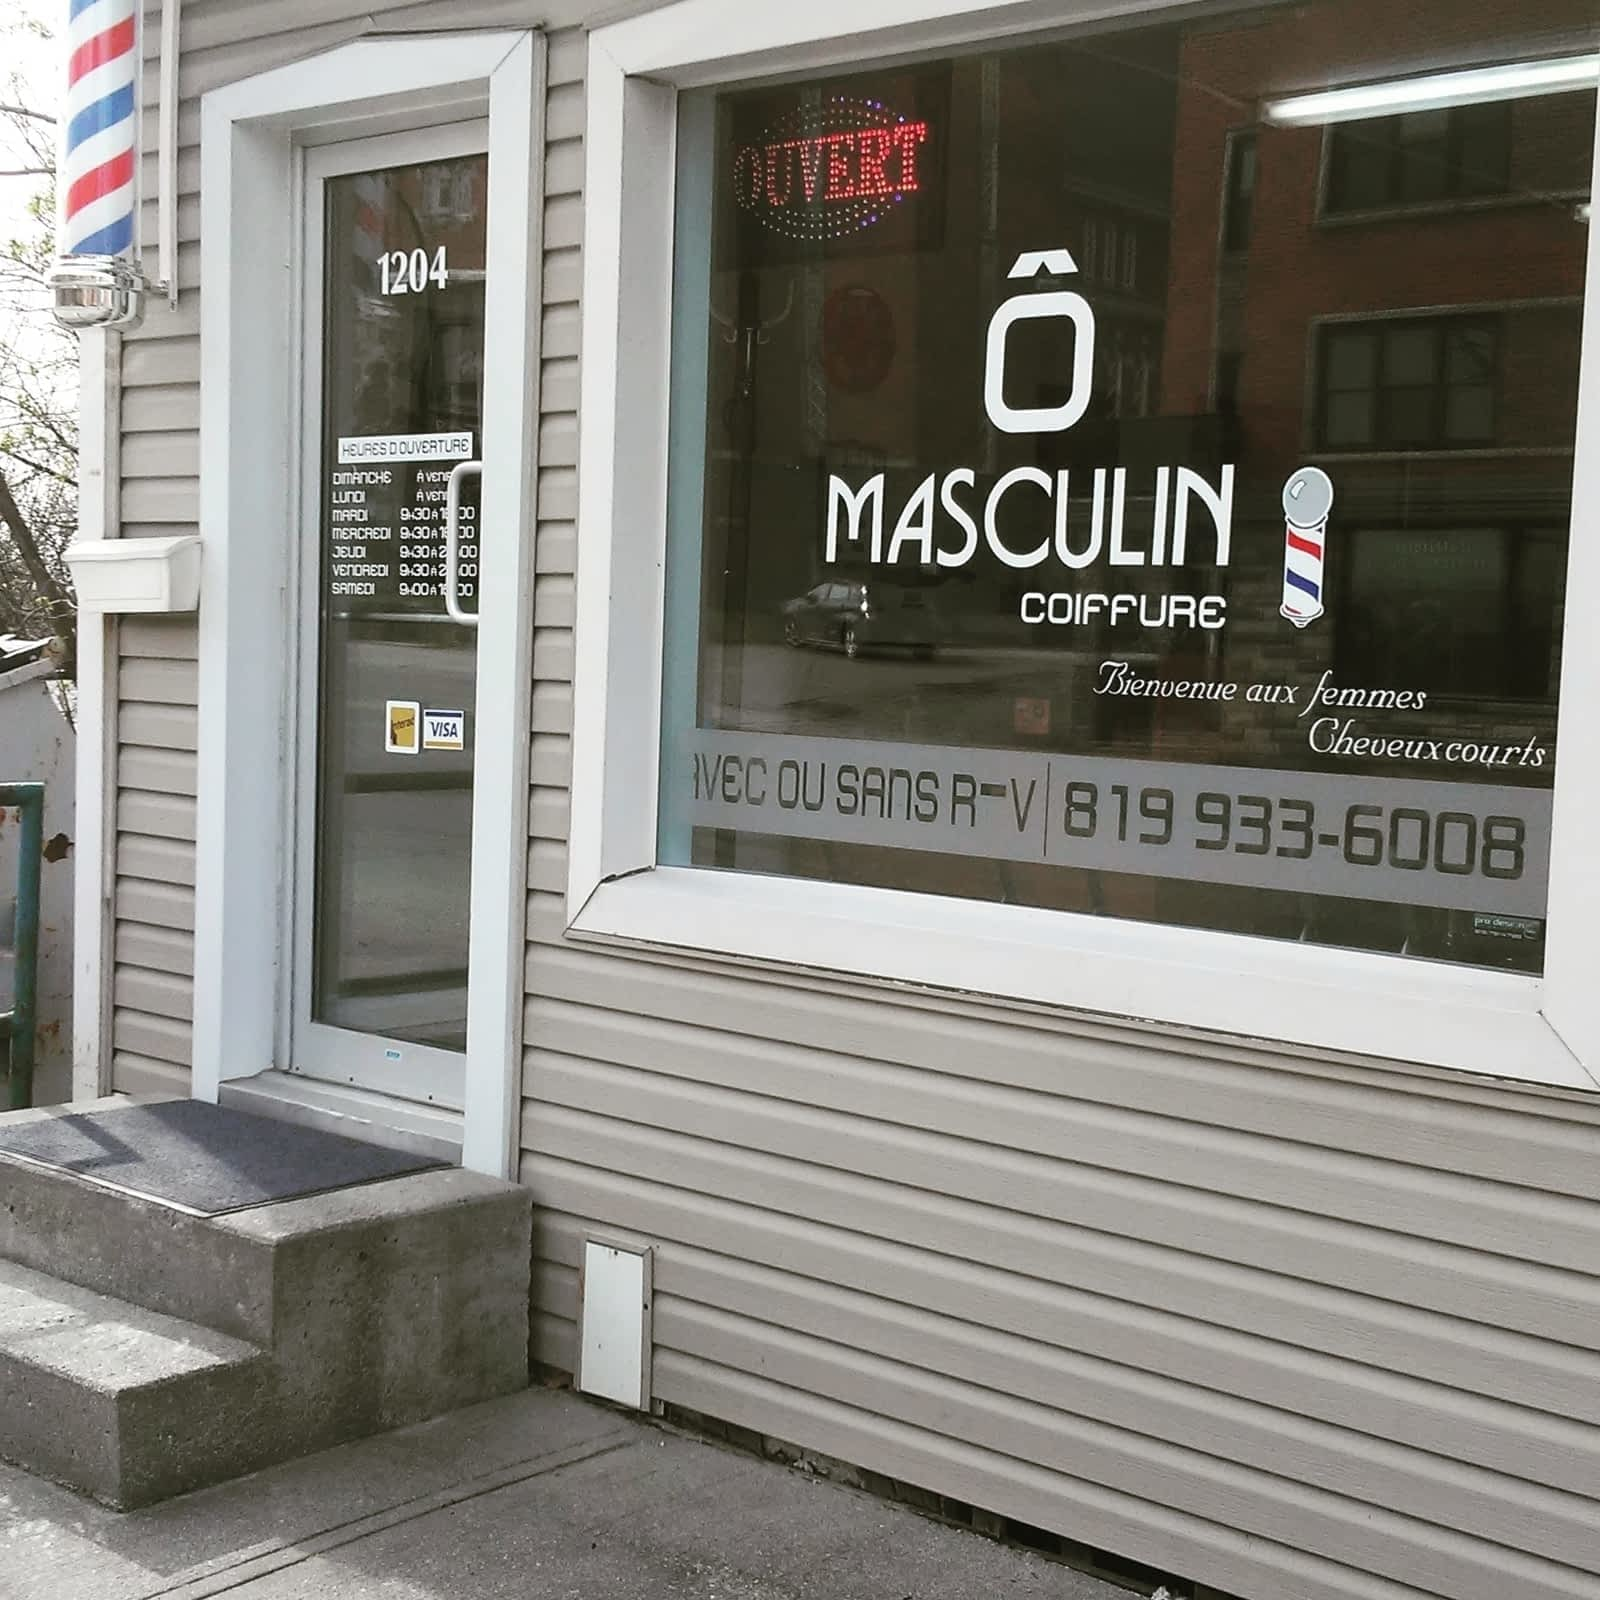 Coiffure Pour Homme O Masculin - Opening Hours - 1204 rue King O ...